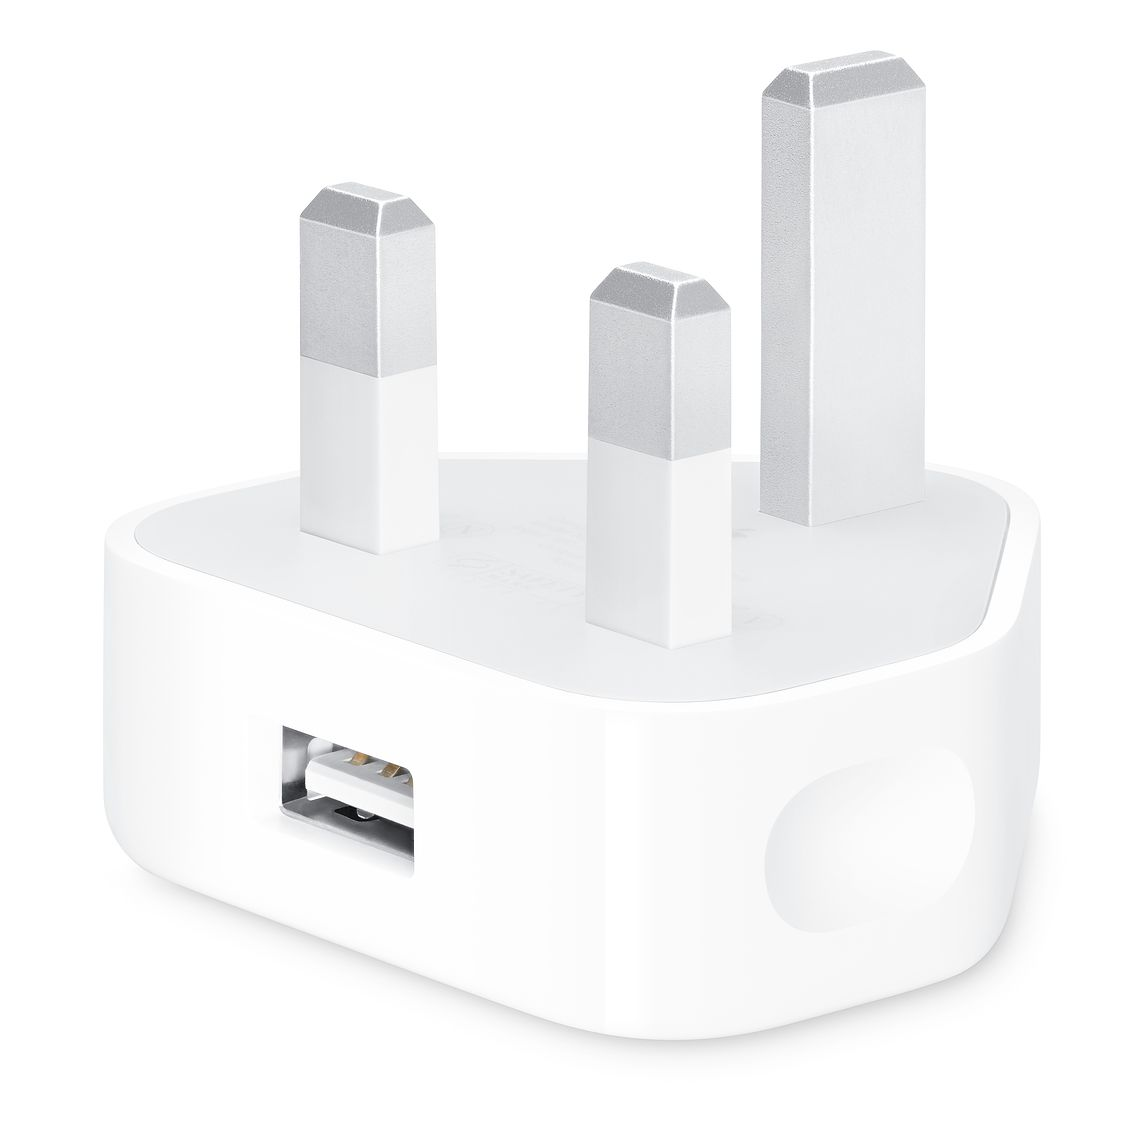 Apple 5W USB Power Adapter - MD812B/C (pc)